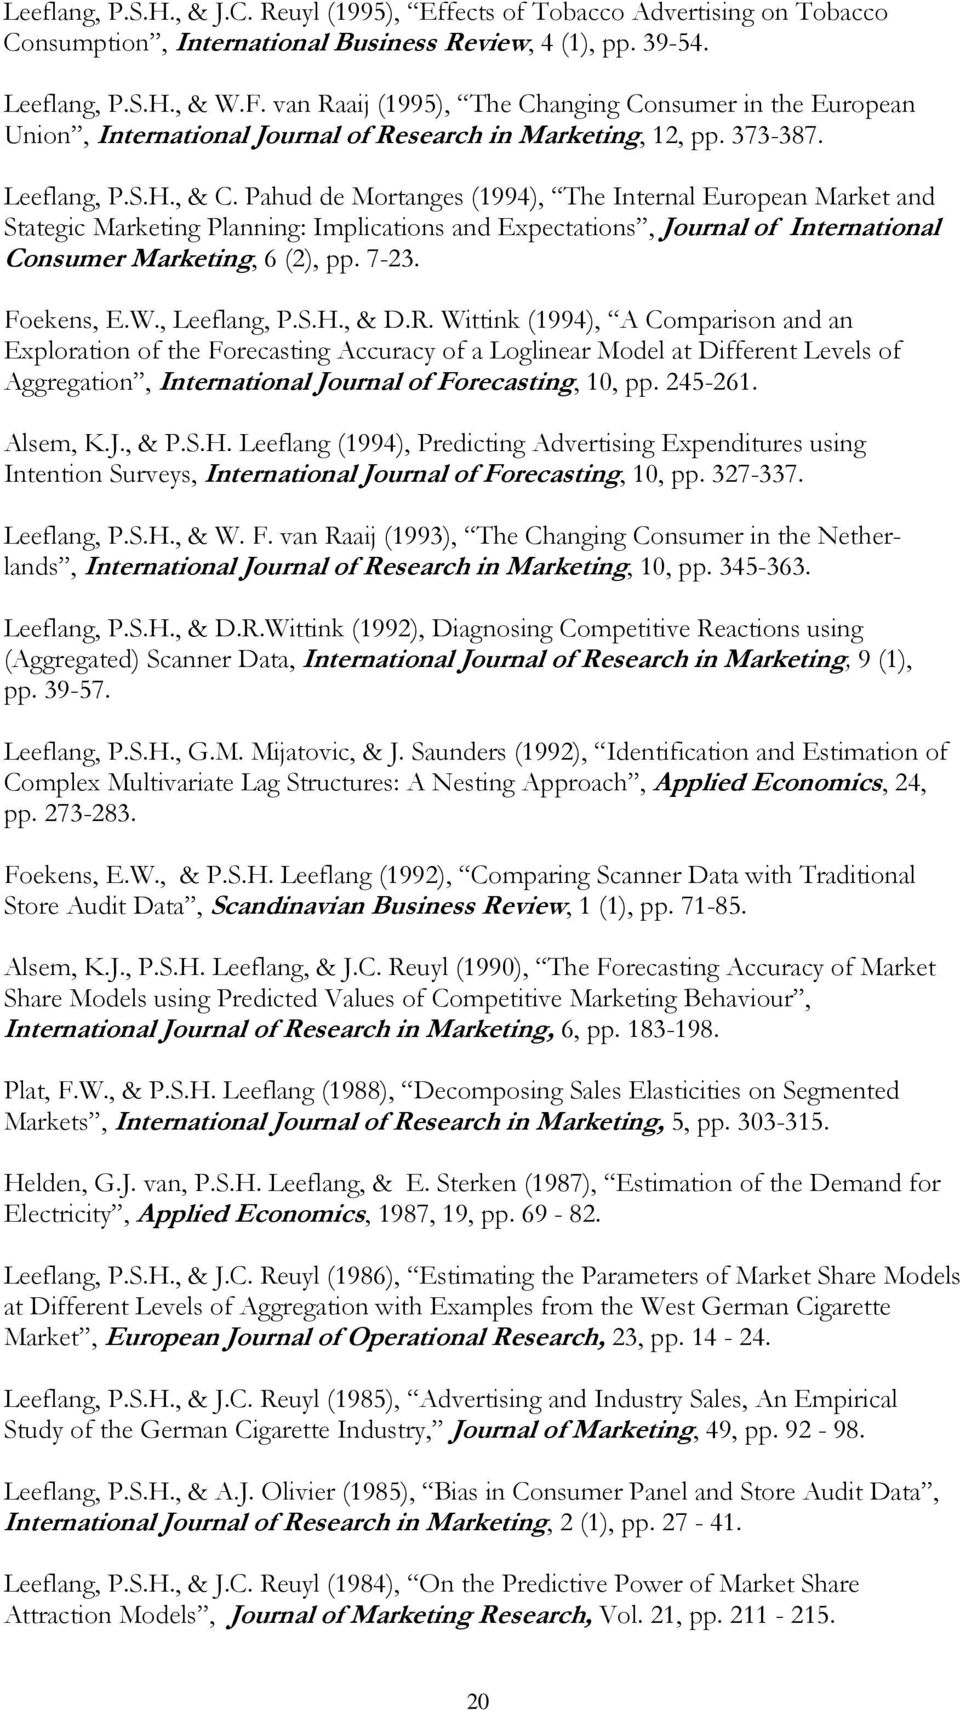 Pahud de Mortanges (1994), The Internal European Market and Stategic Marketing Planning: Implications and Expectations, Journal of International Consumer Marketing, 6 (2), pp. 7-23. Foekens, E.W.